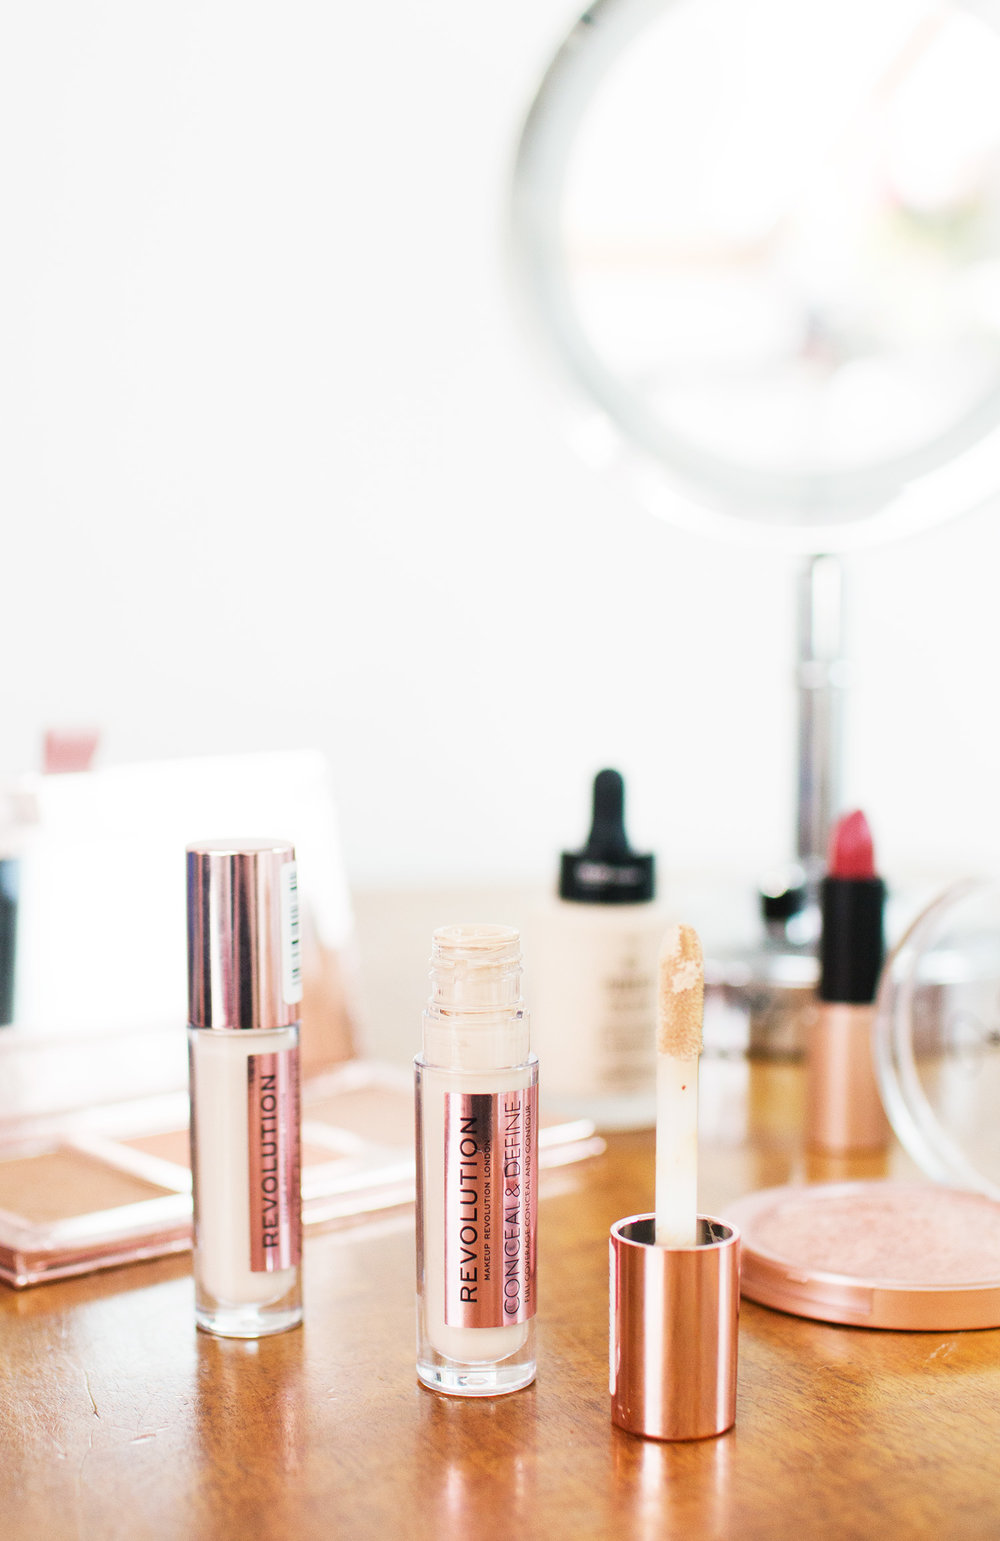 Makeup Revolution Conceal and Define Concealer in C1 and C2. Photography by Alice Red.